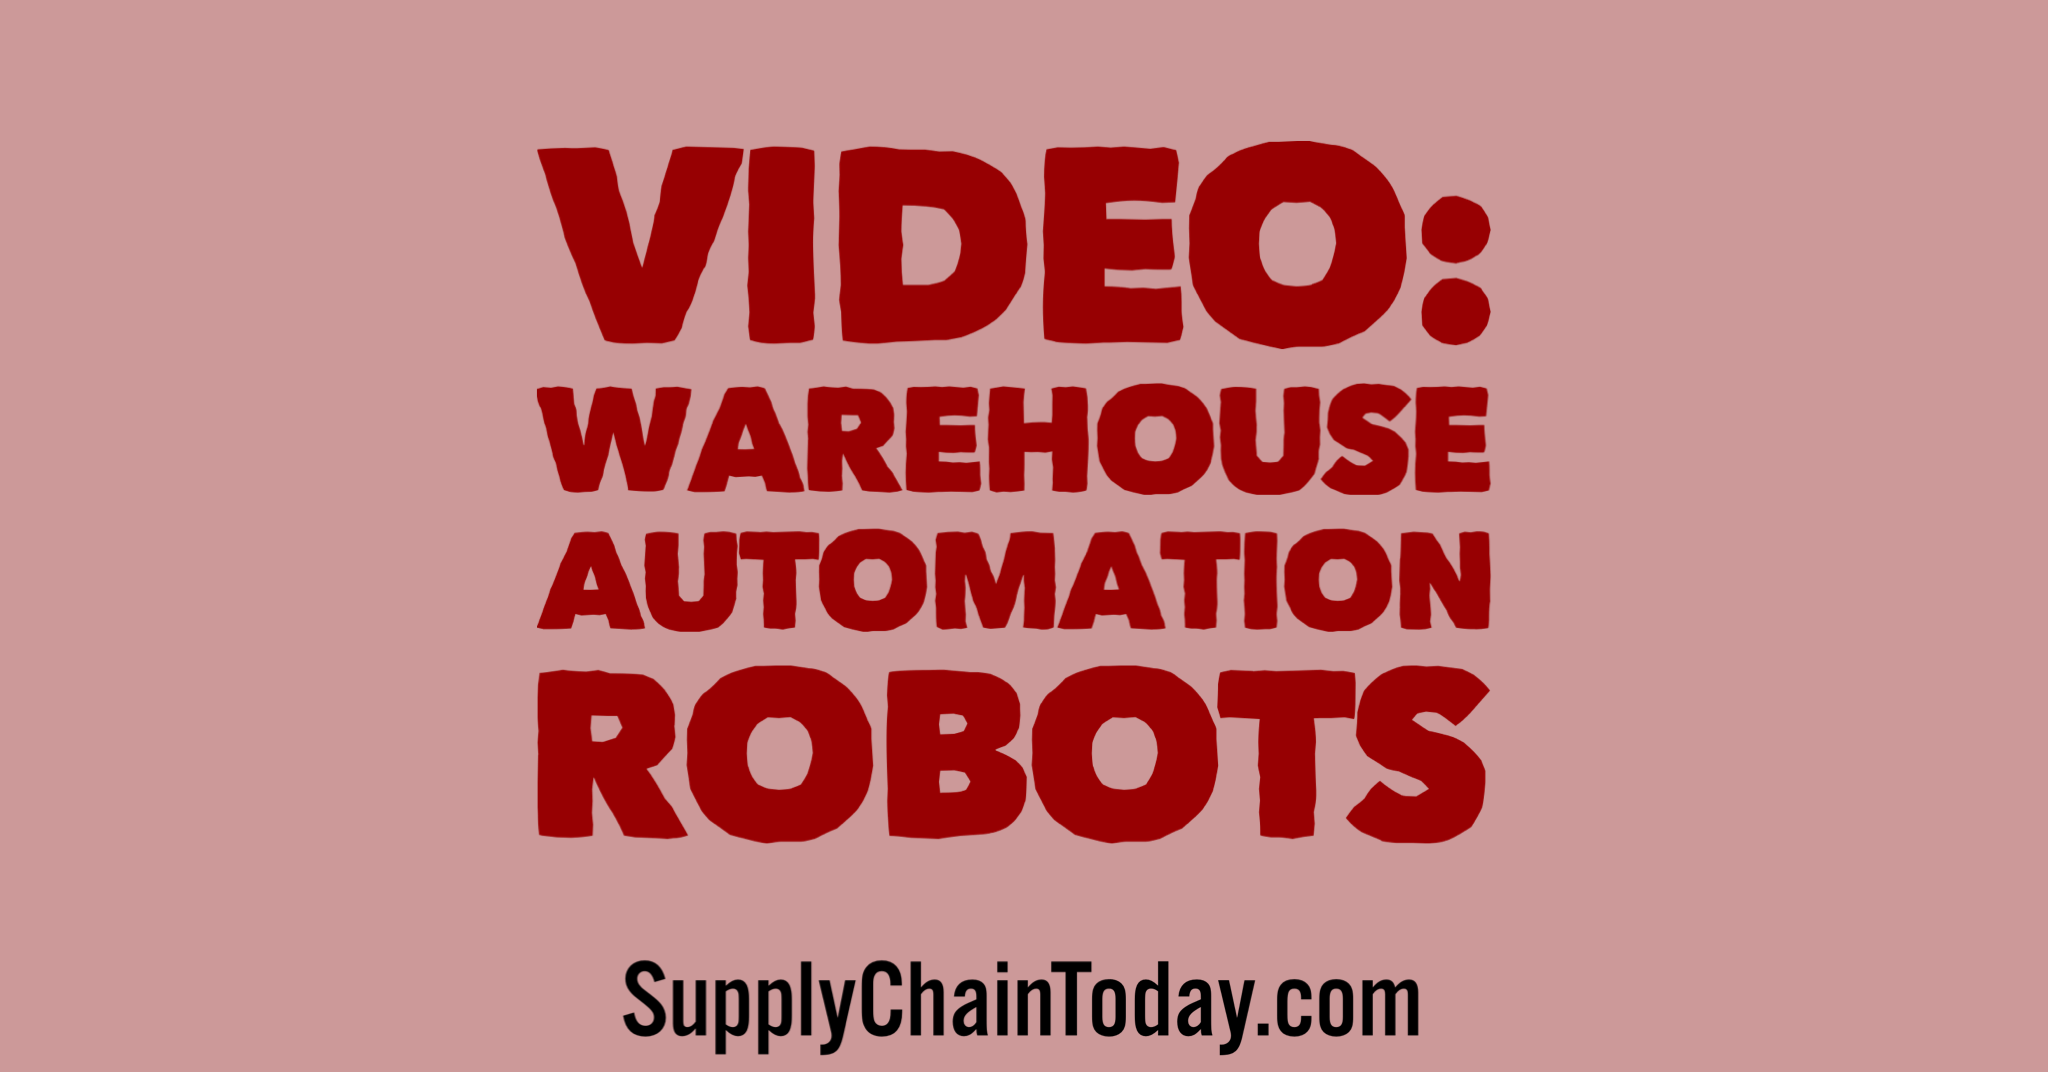 Shipping Warehouse Automation Robots - Supply Chain Today